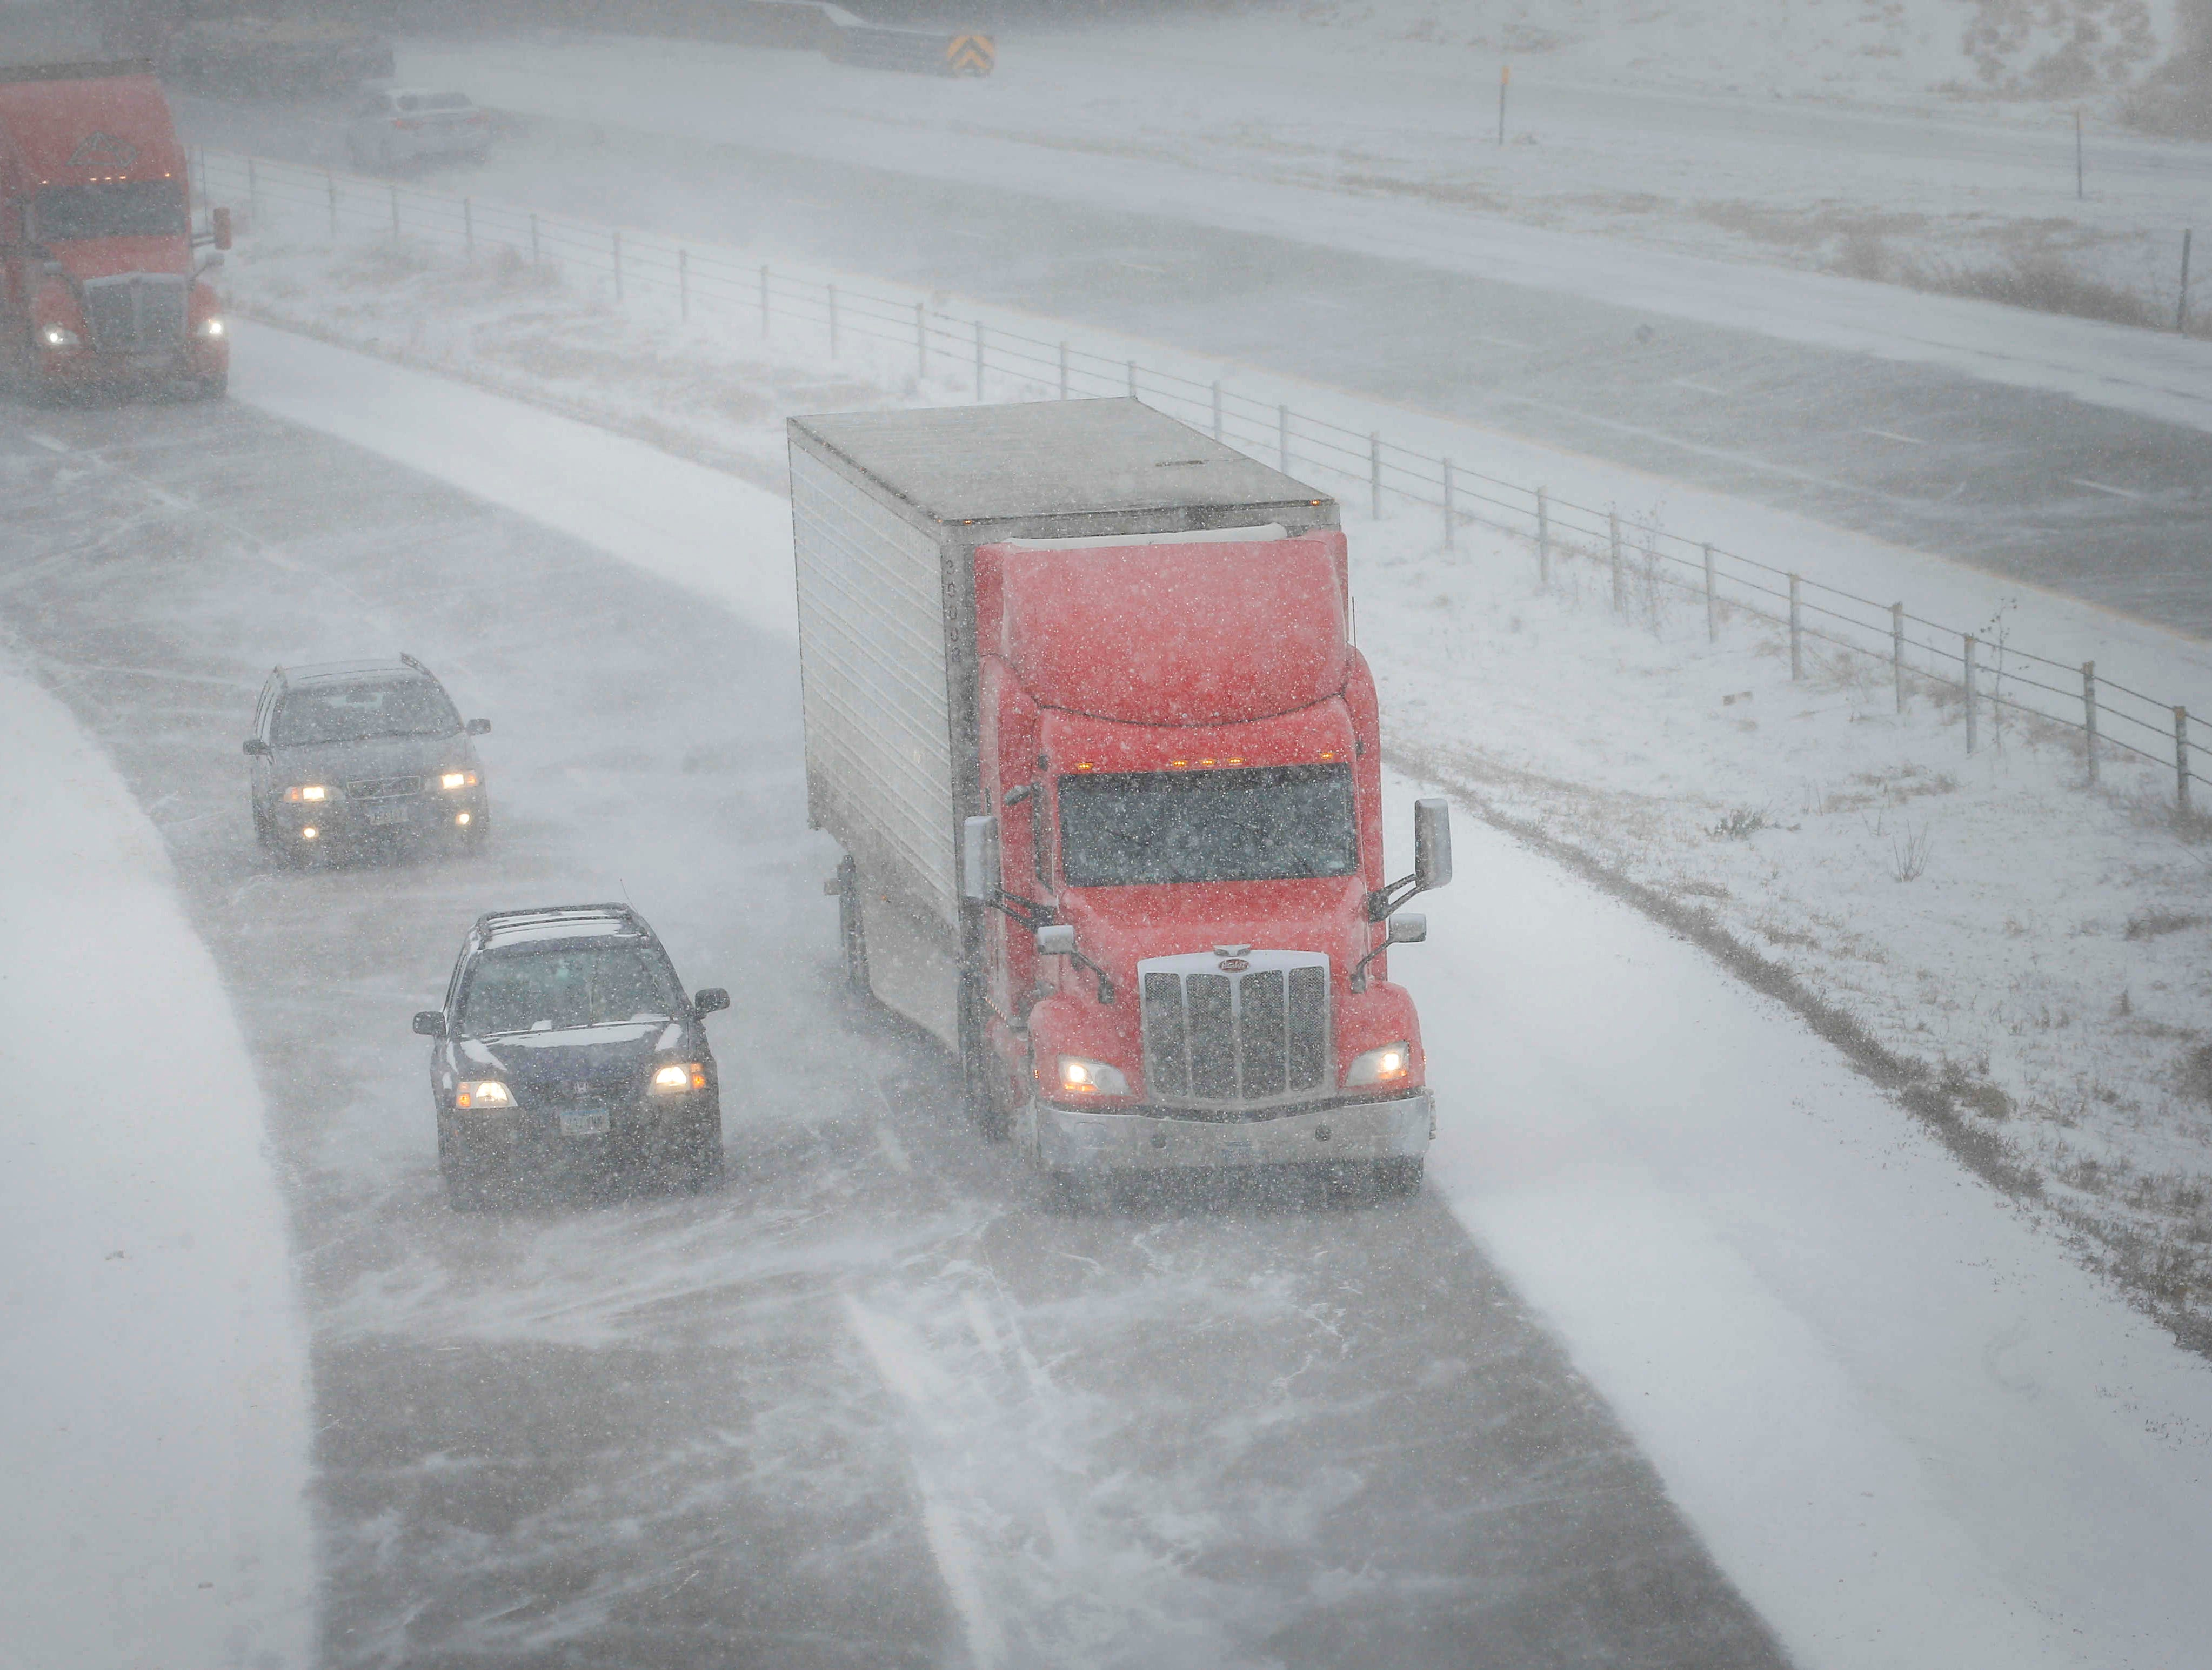 Traffic moves slowly along Interstate 80 in West Des Moines as blowing snow caused visibility issues on Thursday, Feb. 7, 2019.